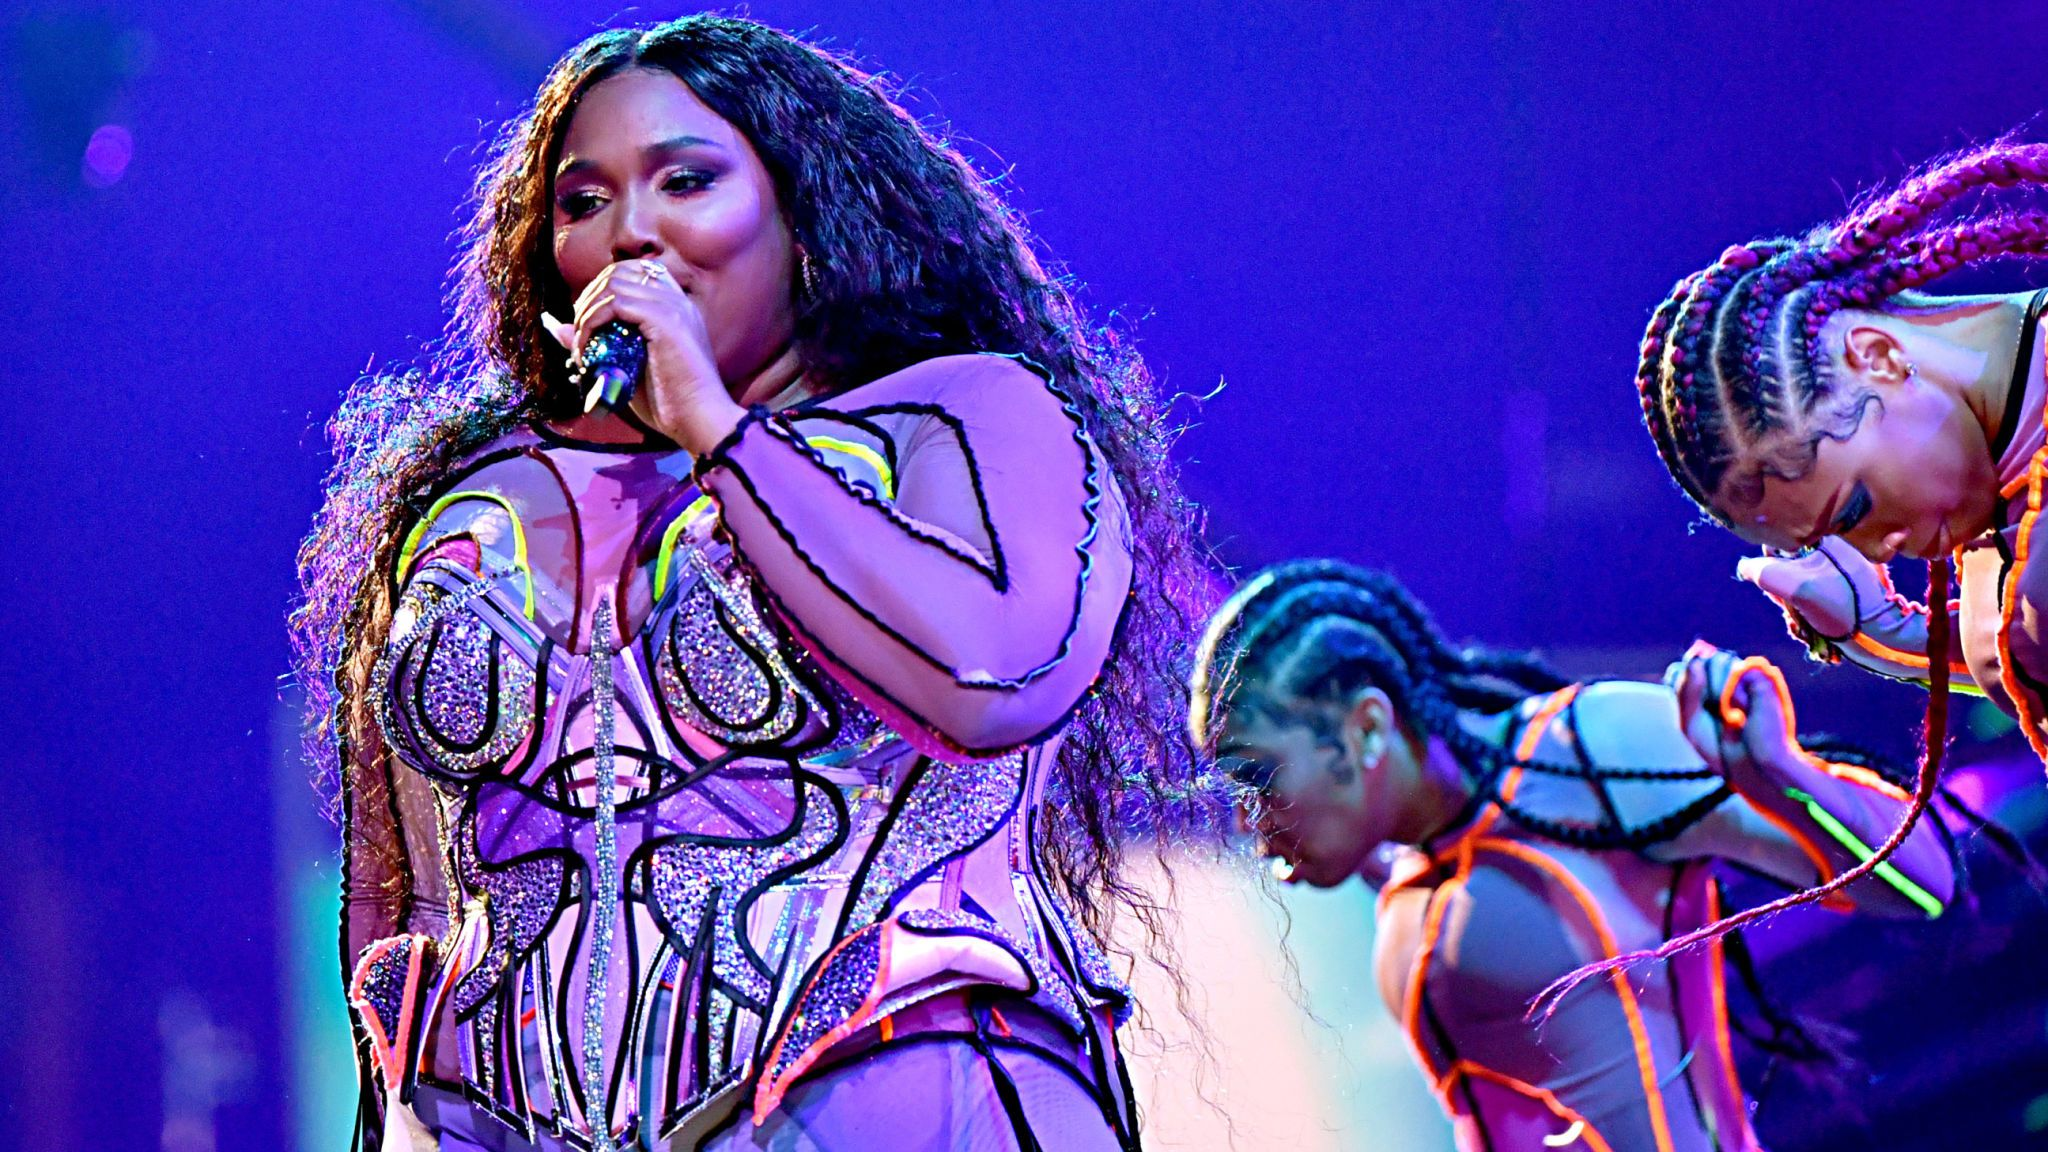 Lizzo performs at the Grammys 2020